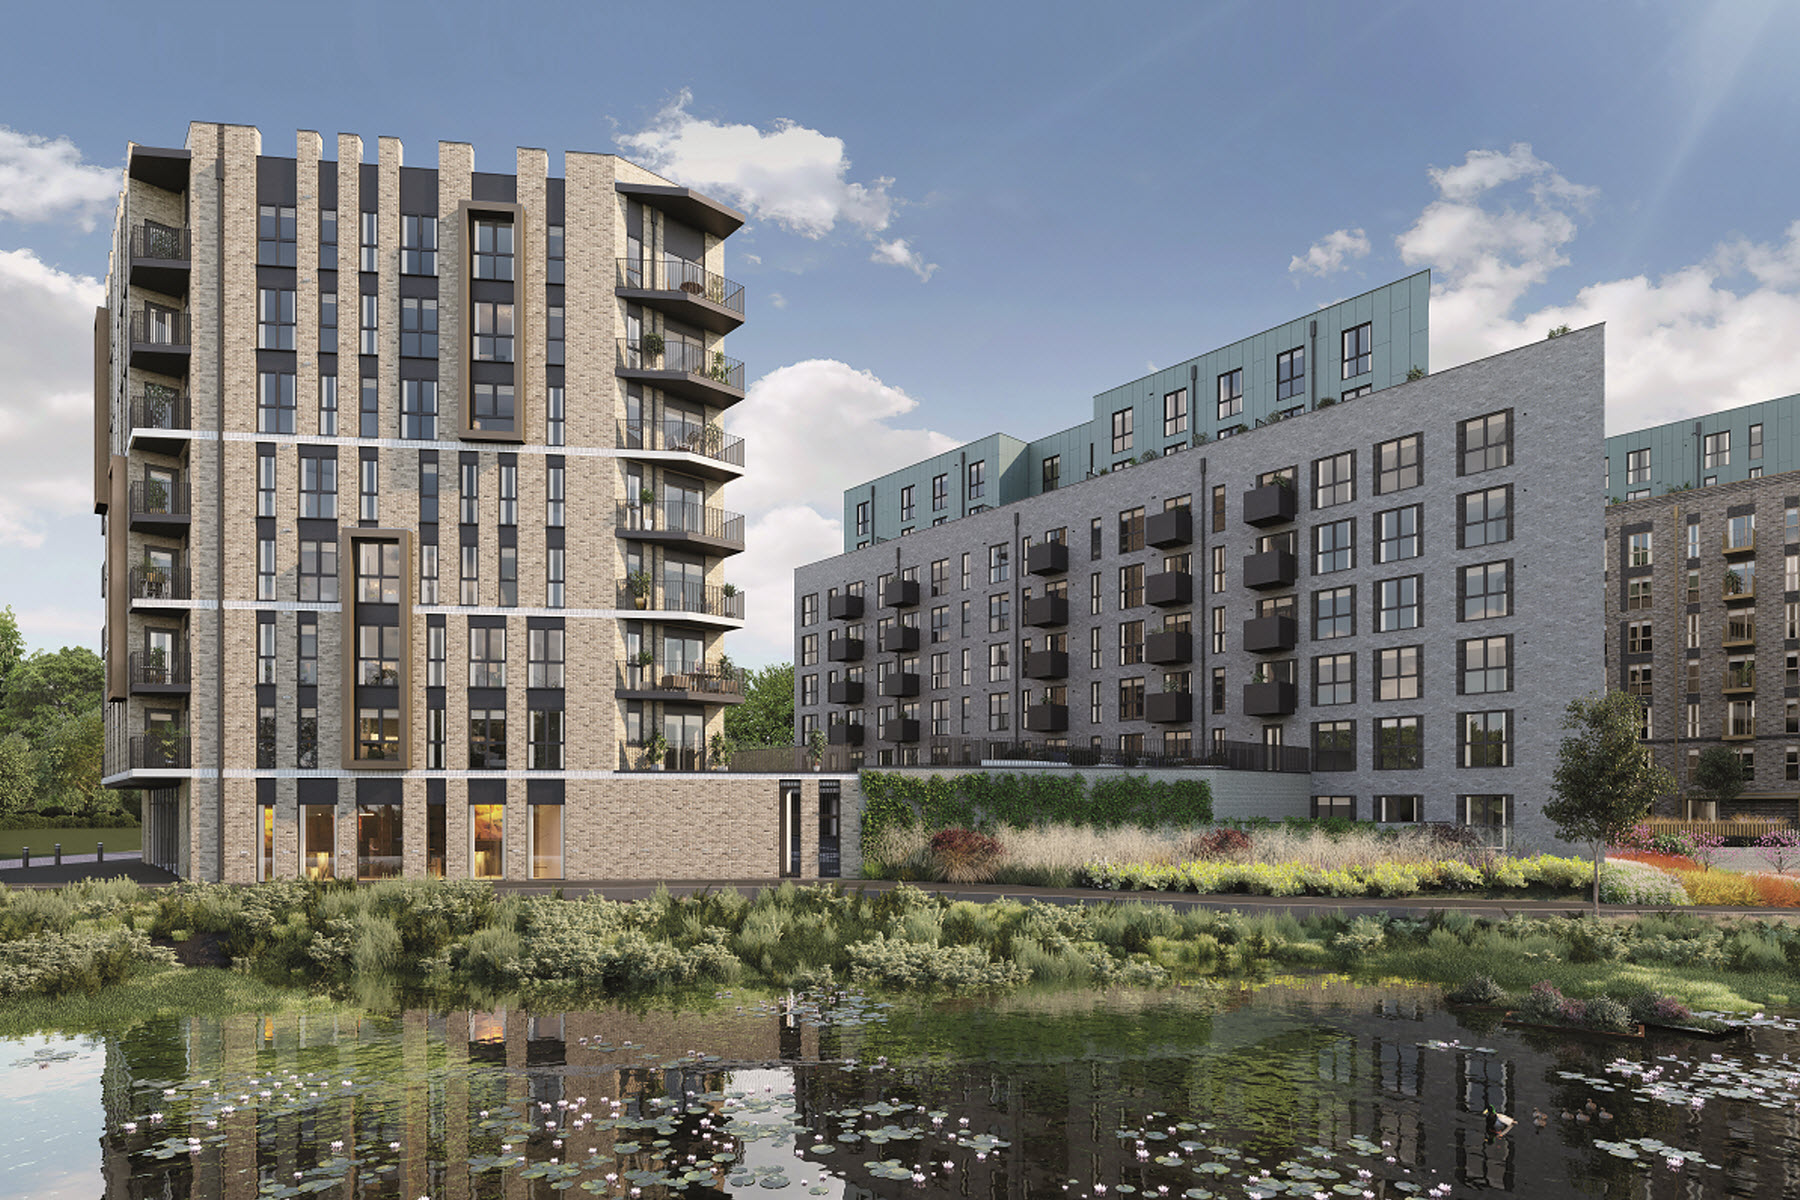 TWEL_Aspyre_Artist impression of Wharf Court